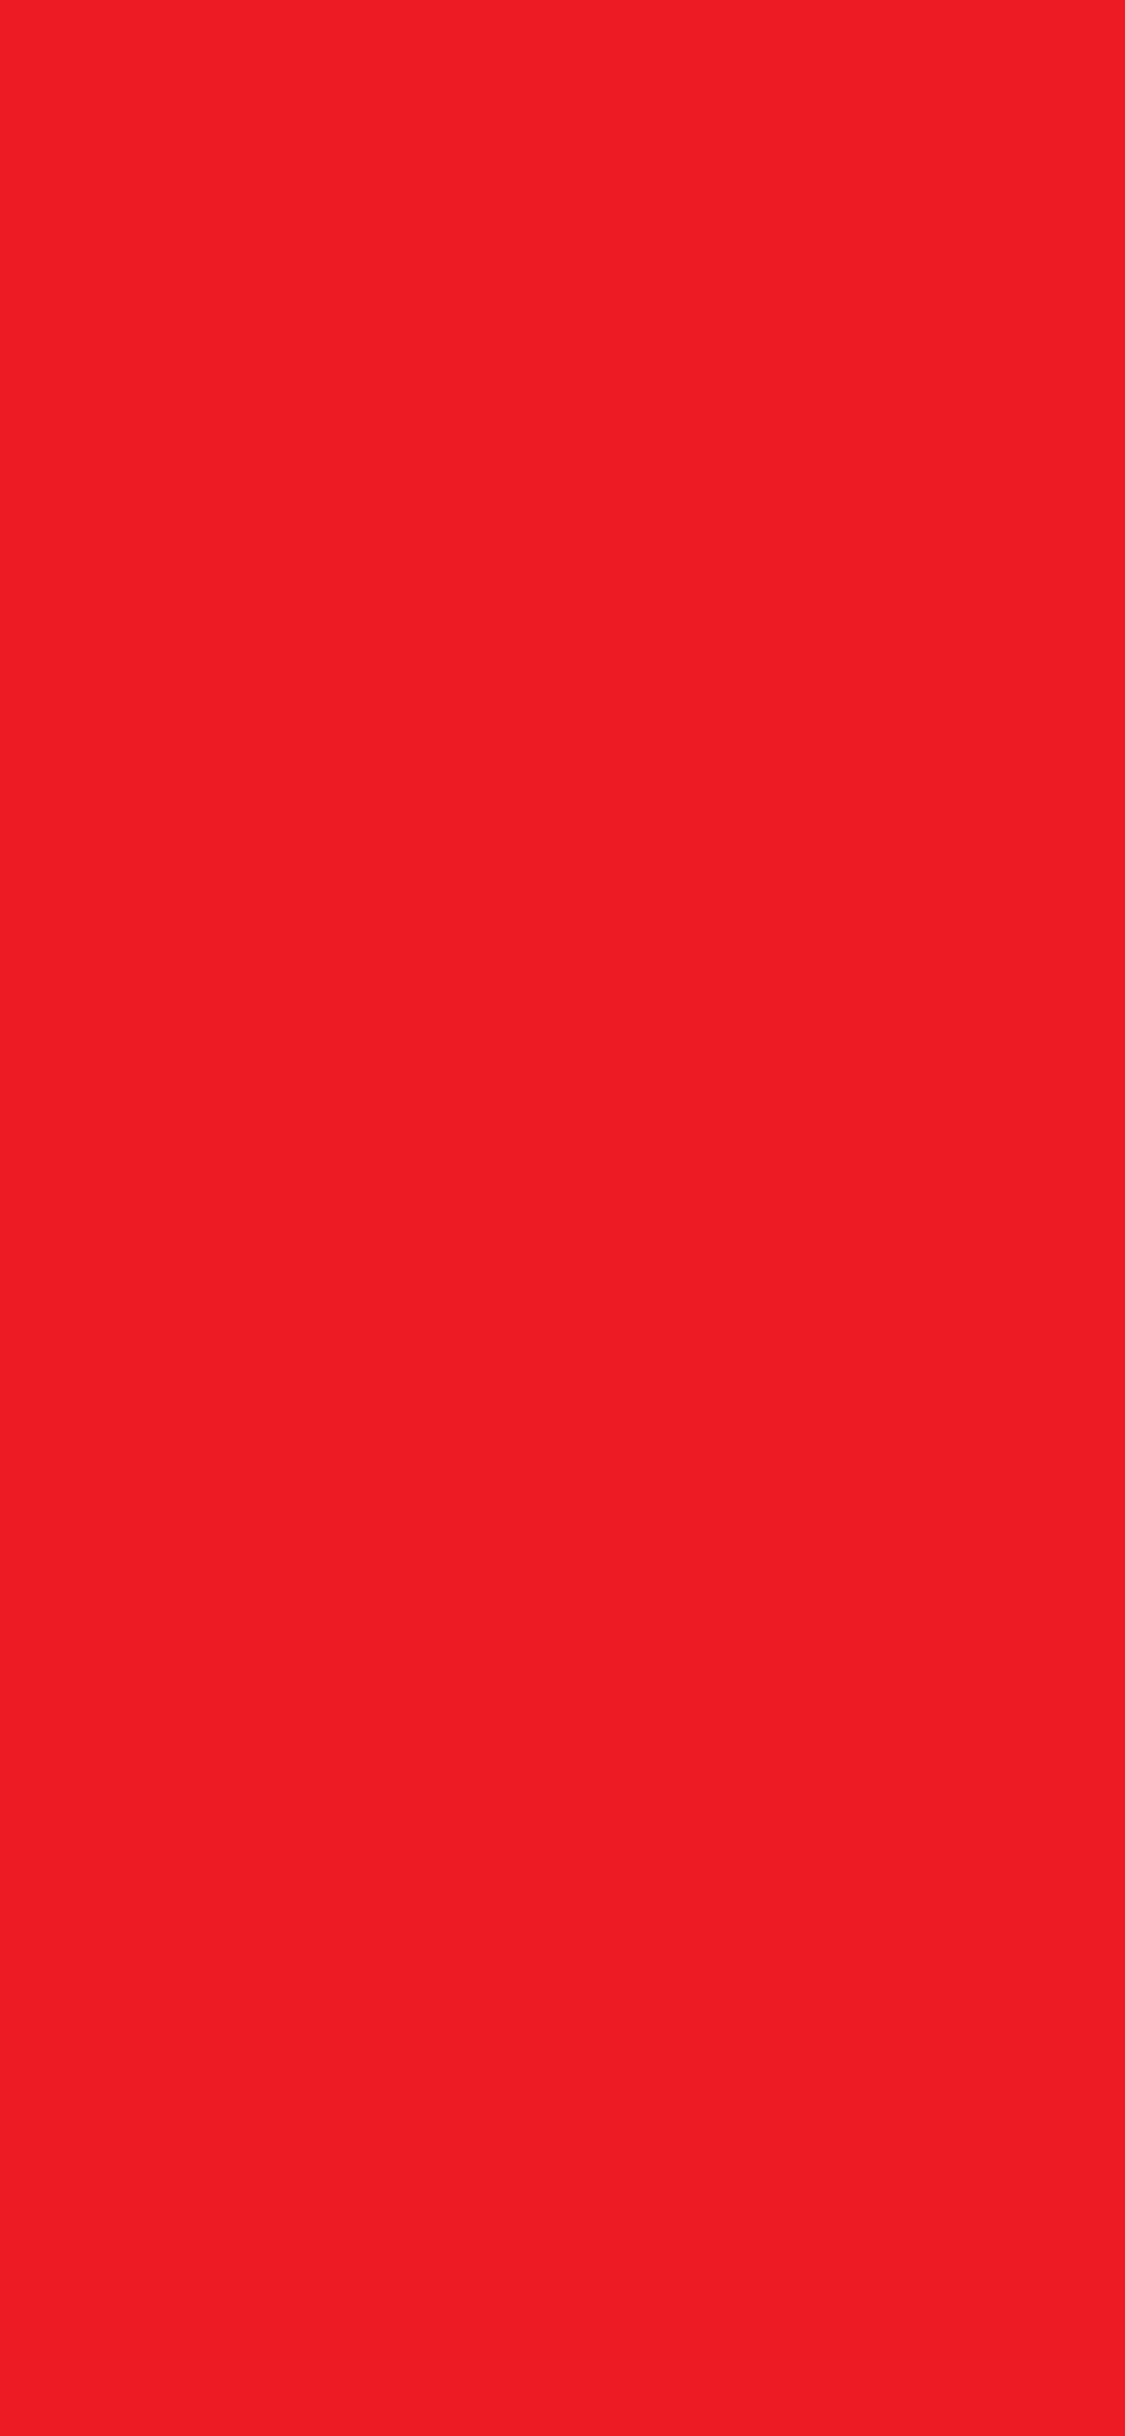 1125x2436 Red Pigment Solid Color Background